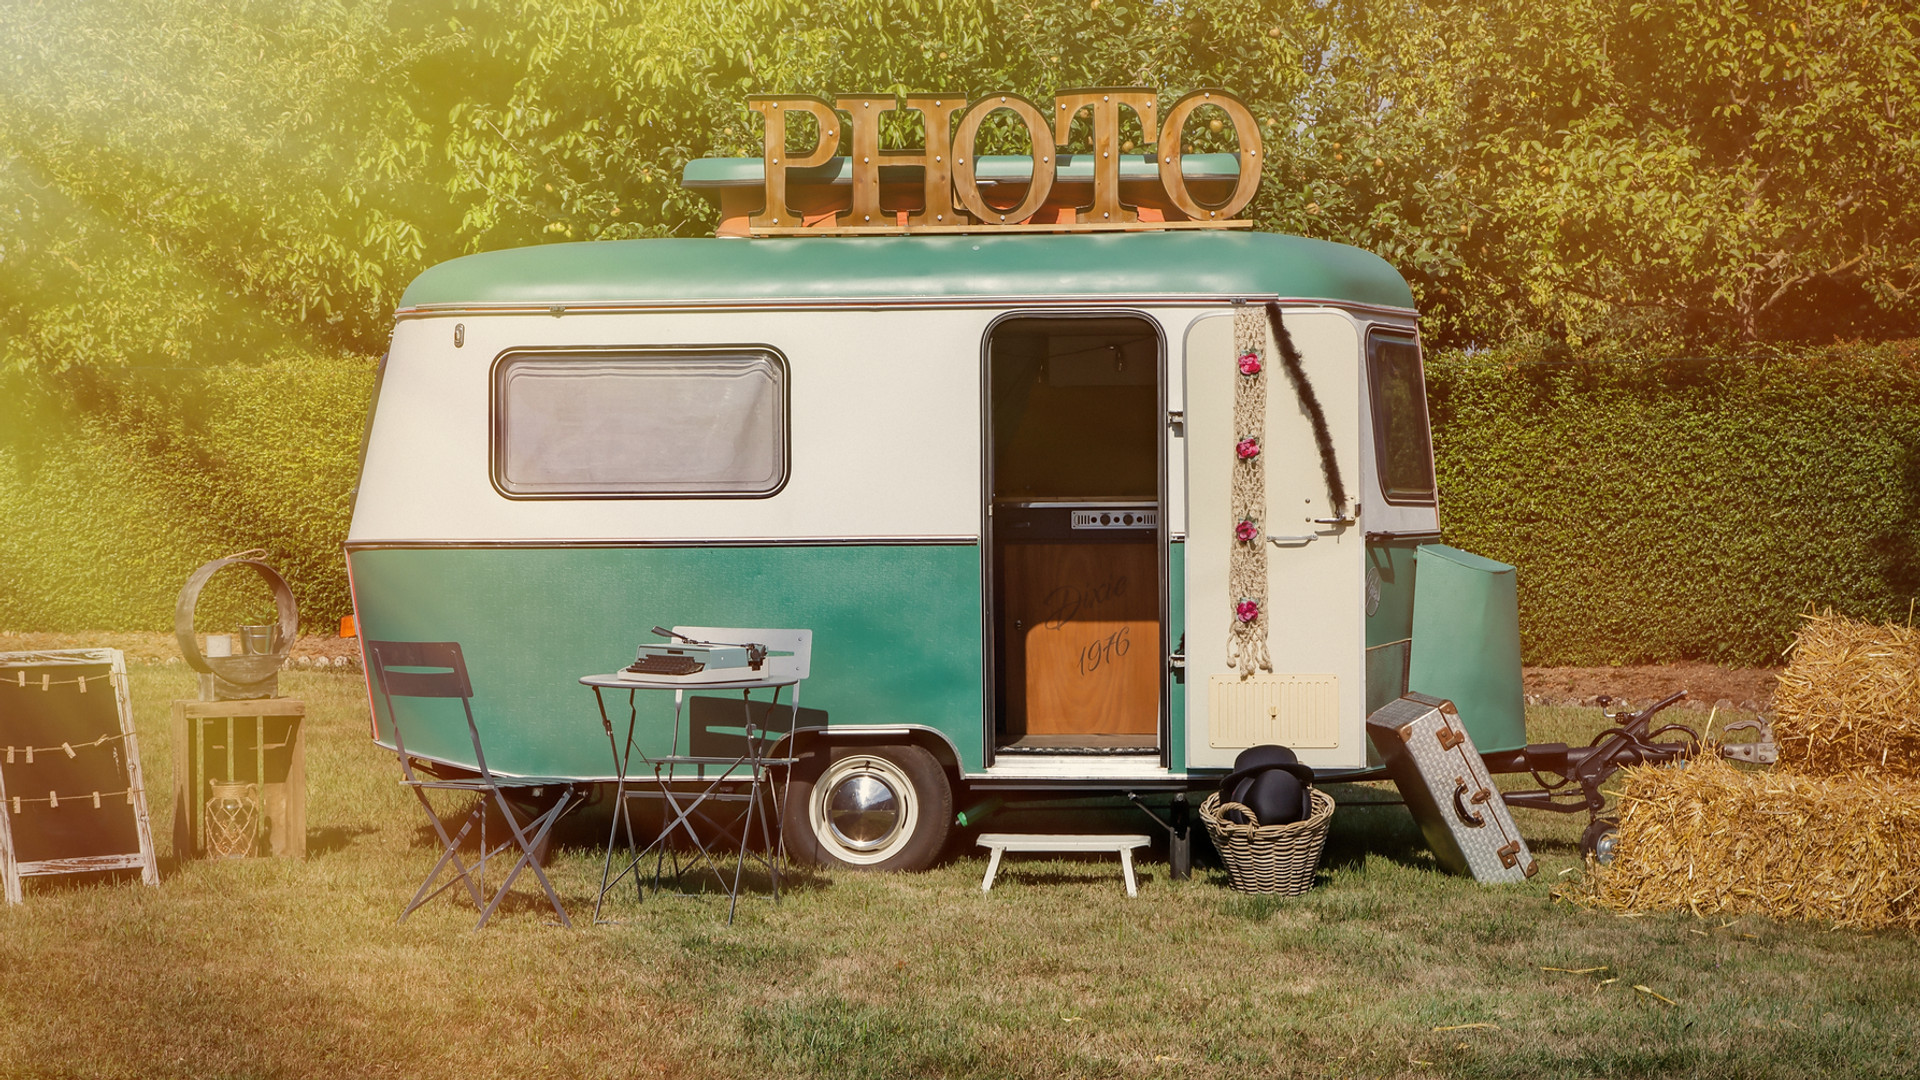 Caravane Photobooth